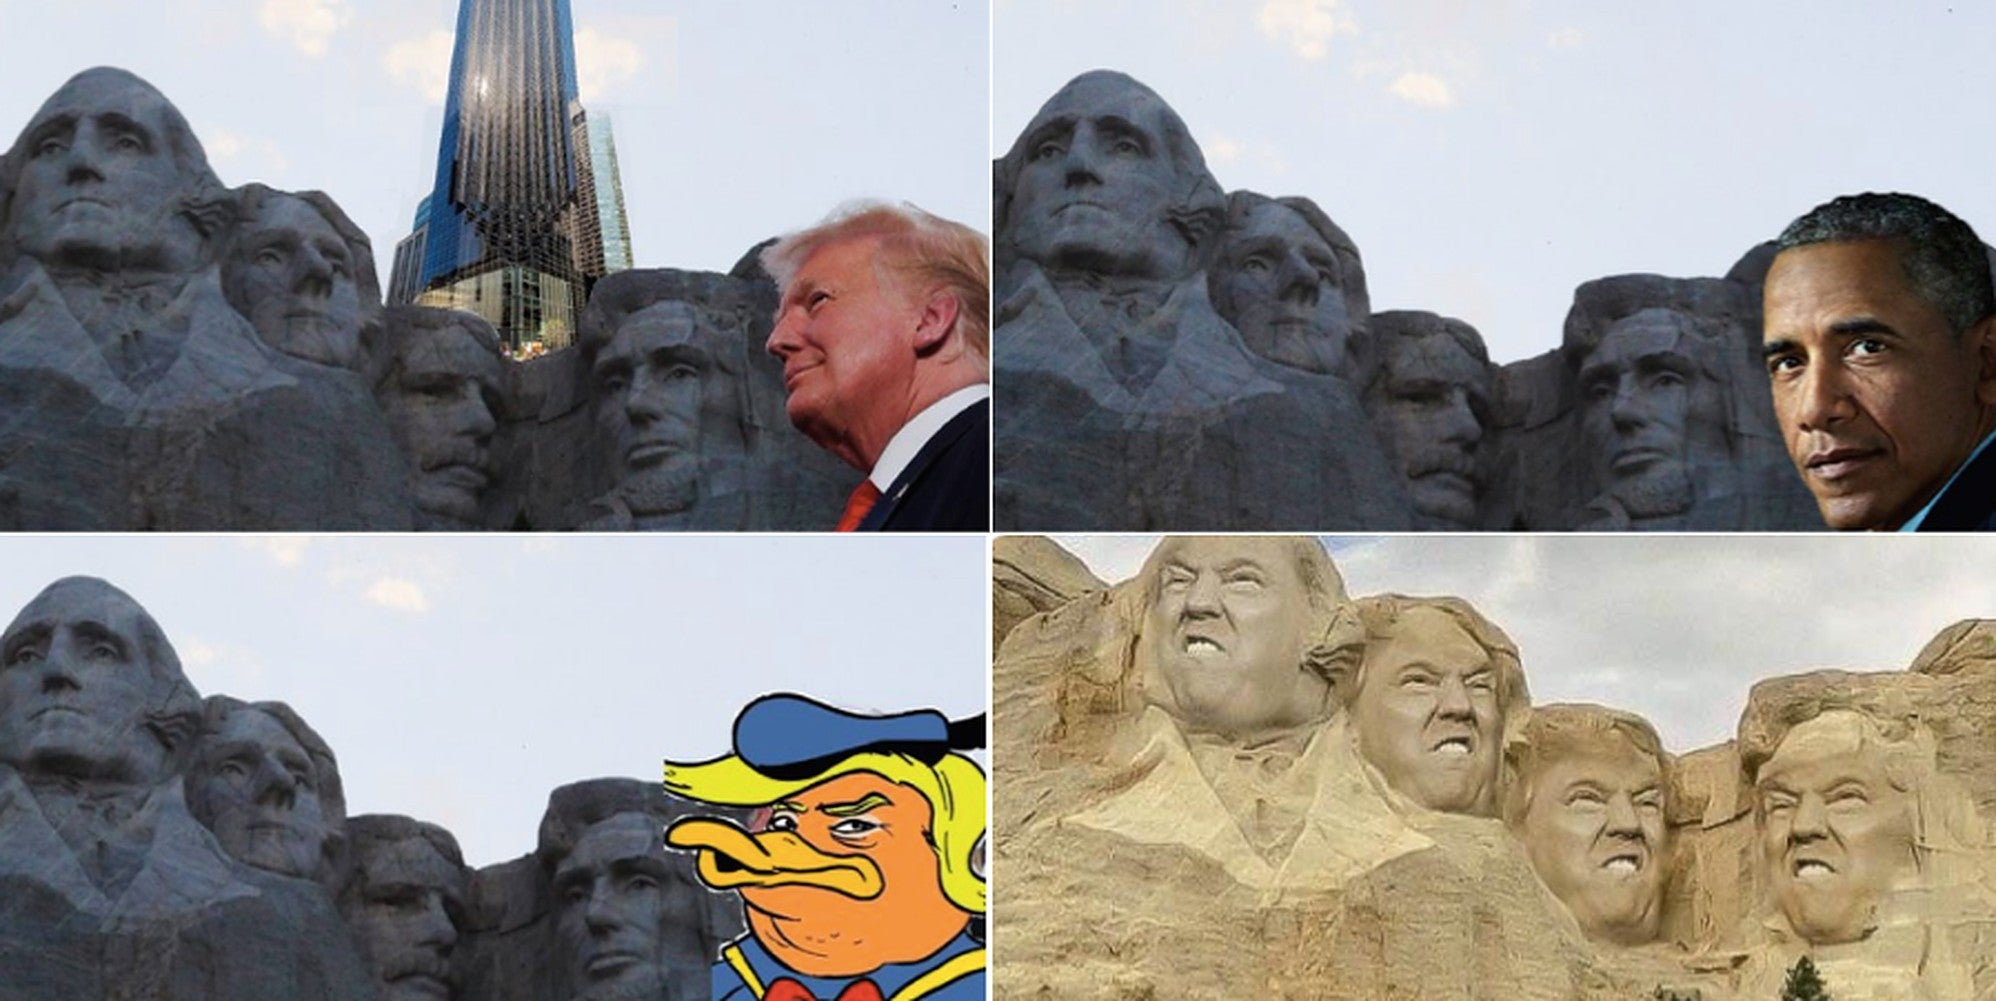 These parody versions of Trump's staged Mount Rushmore photo are even better than the original